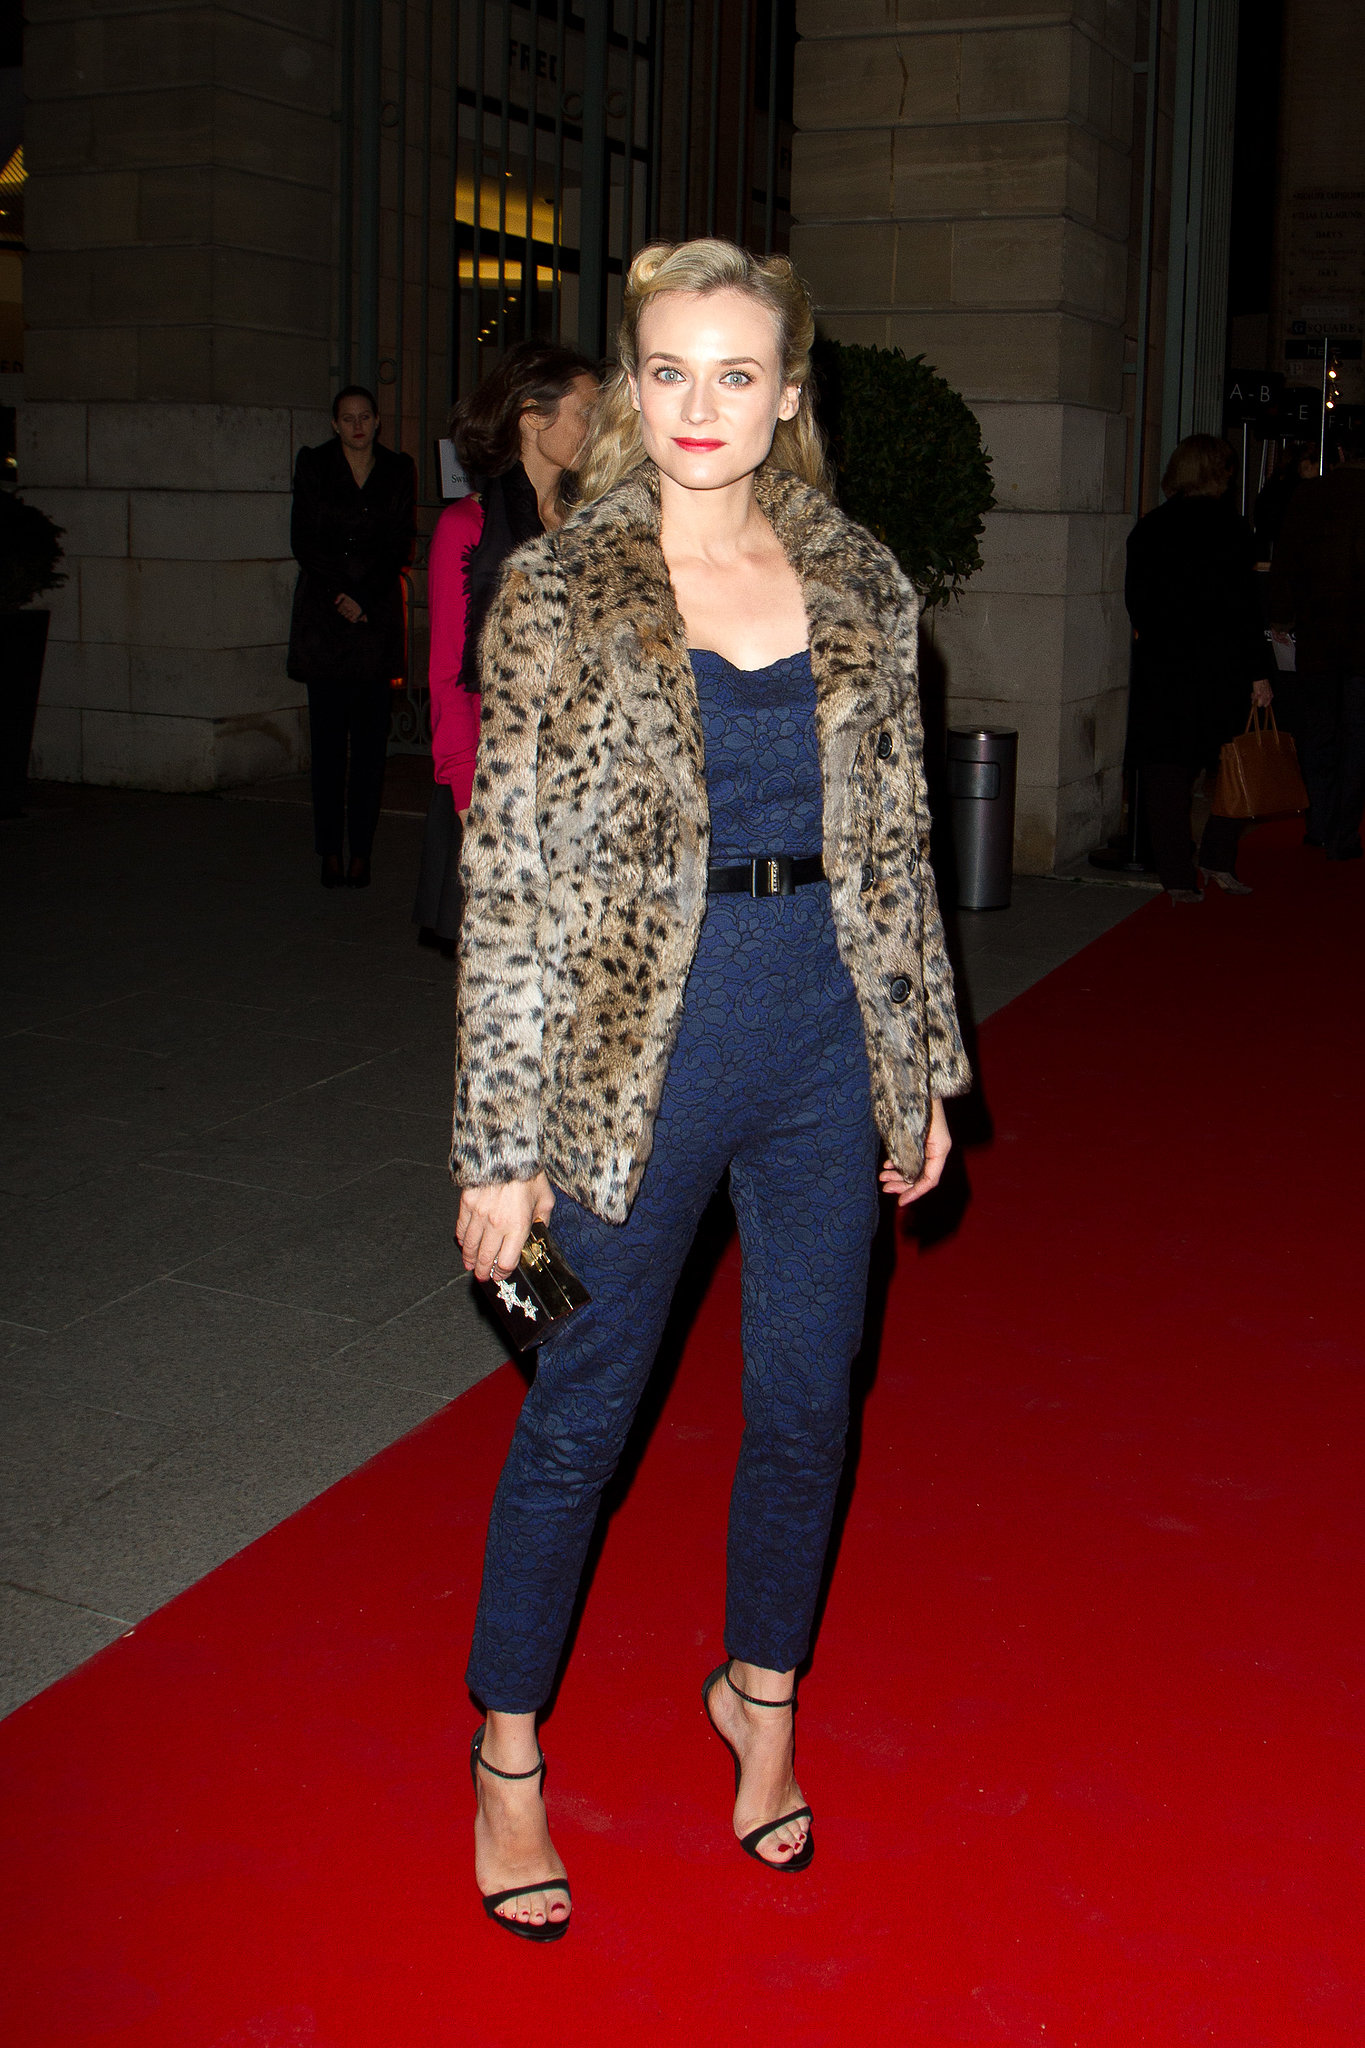 When visiting the City of Light you better bring your fashion A-game, and in 2012 Diane most definitely did. The star took us back to a much simpler and stylish time donning a formfitting Jason Wu jumpsuit, plush leopard coat, and retro-chic curls.